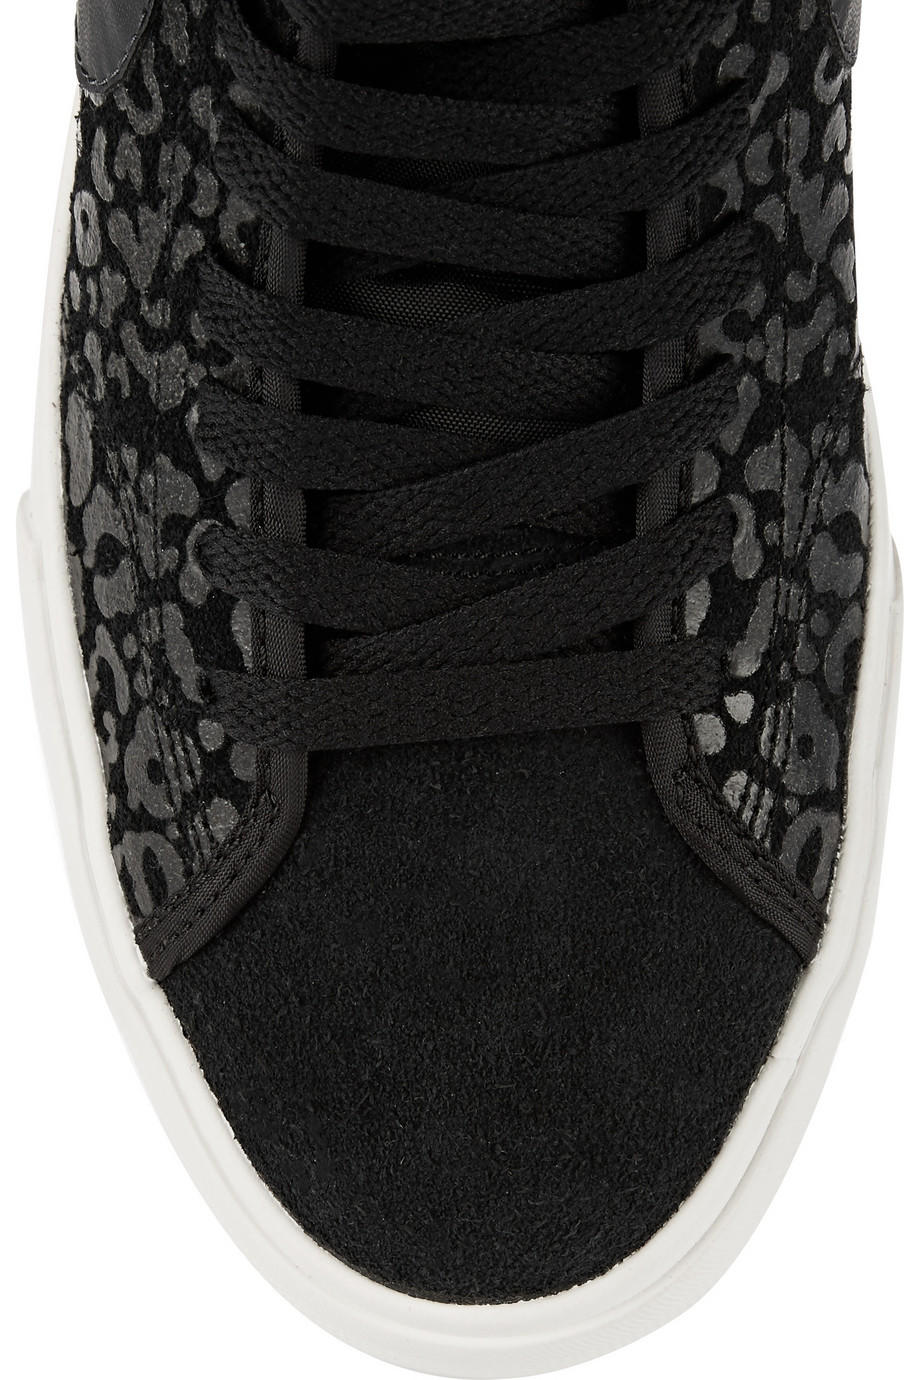 outlet store 9873f a8dc2 Nike - Primo Court leopard-print suede high-top sneakers